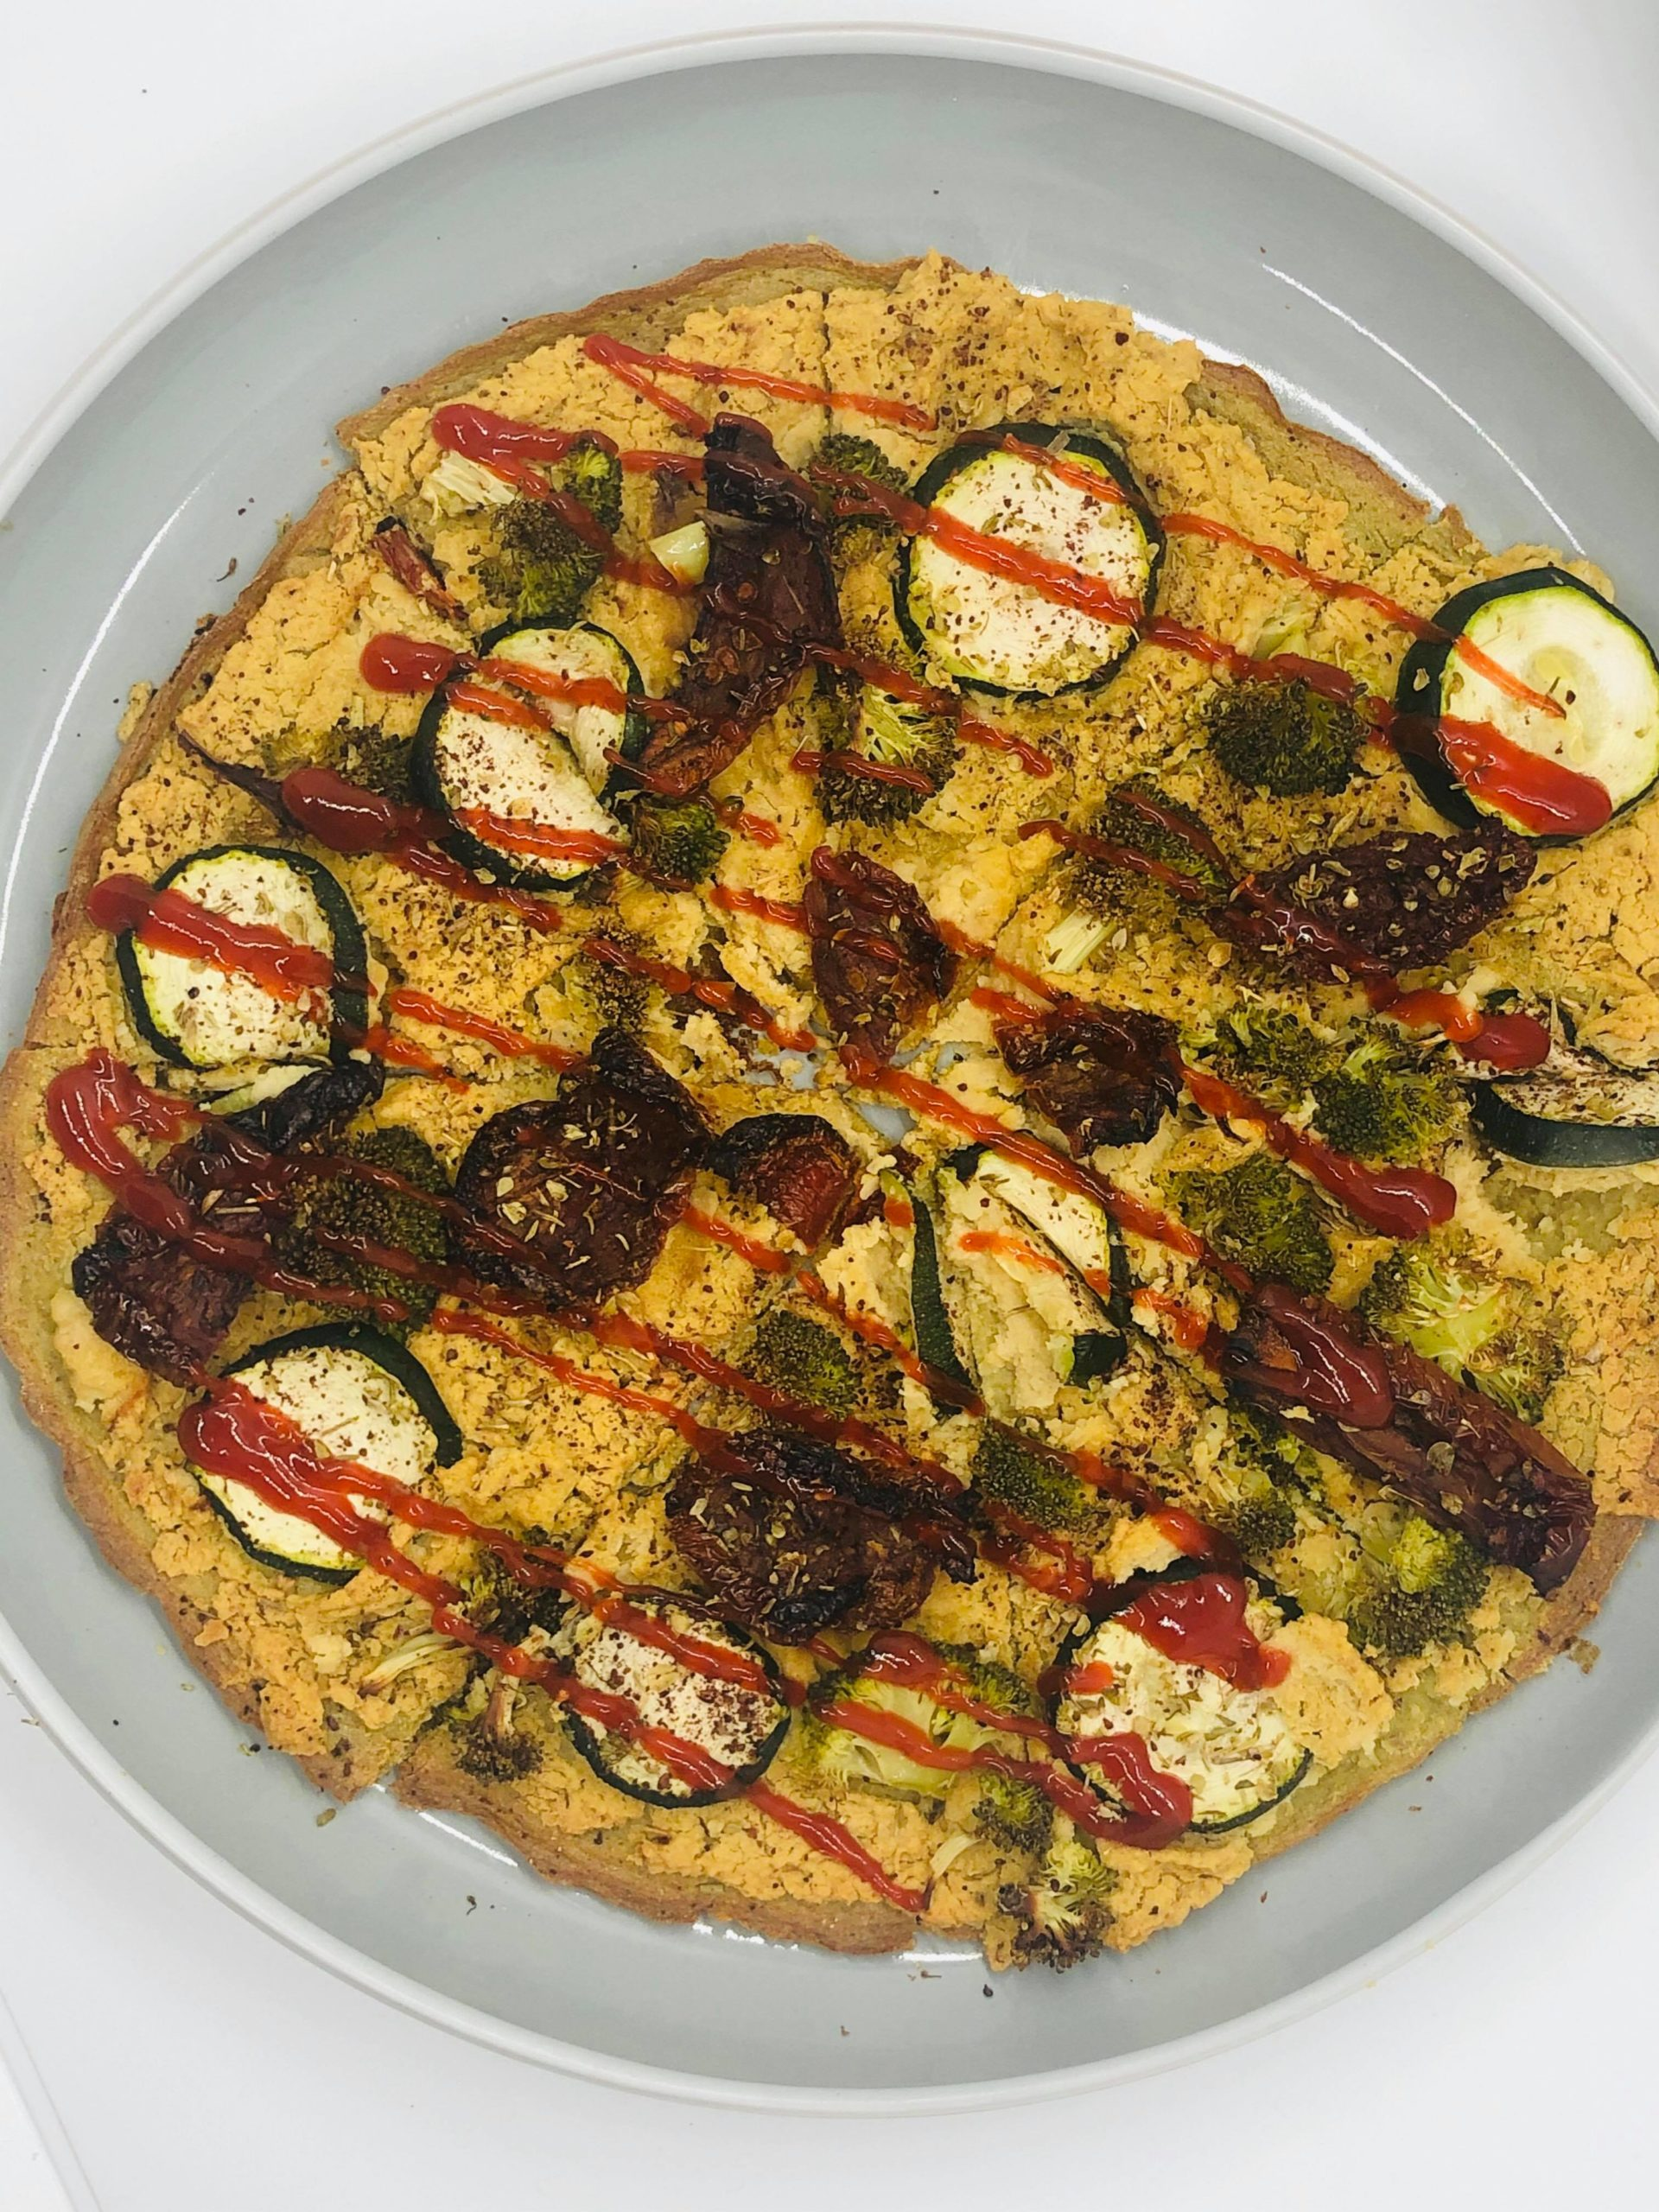 Super Easy Healthy Gluten-Free Vegan Broccoli Pizza